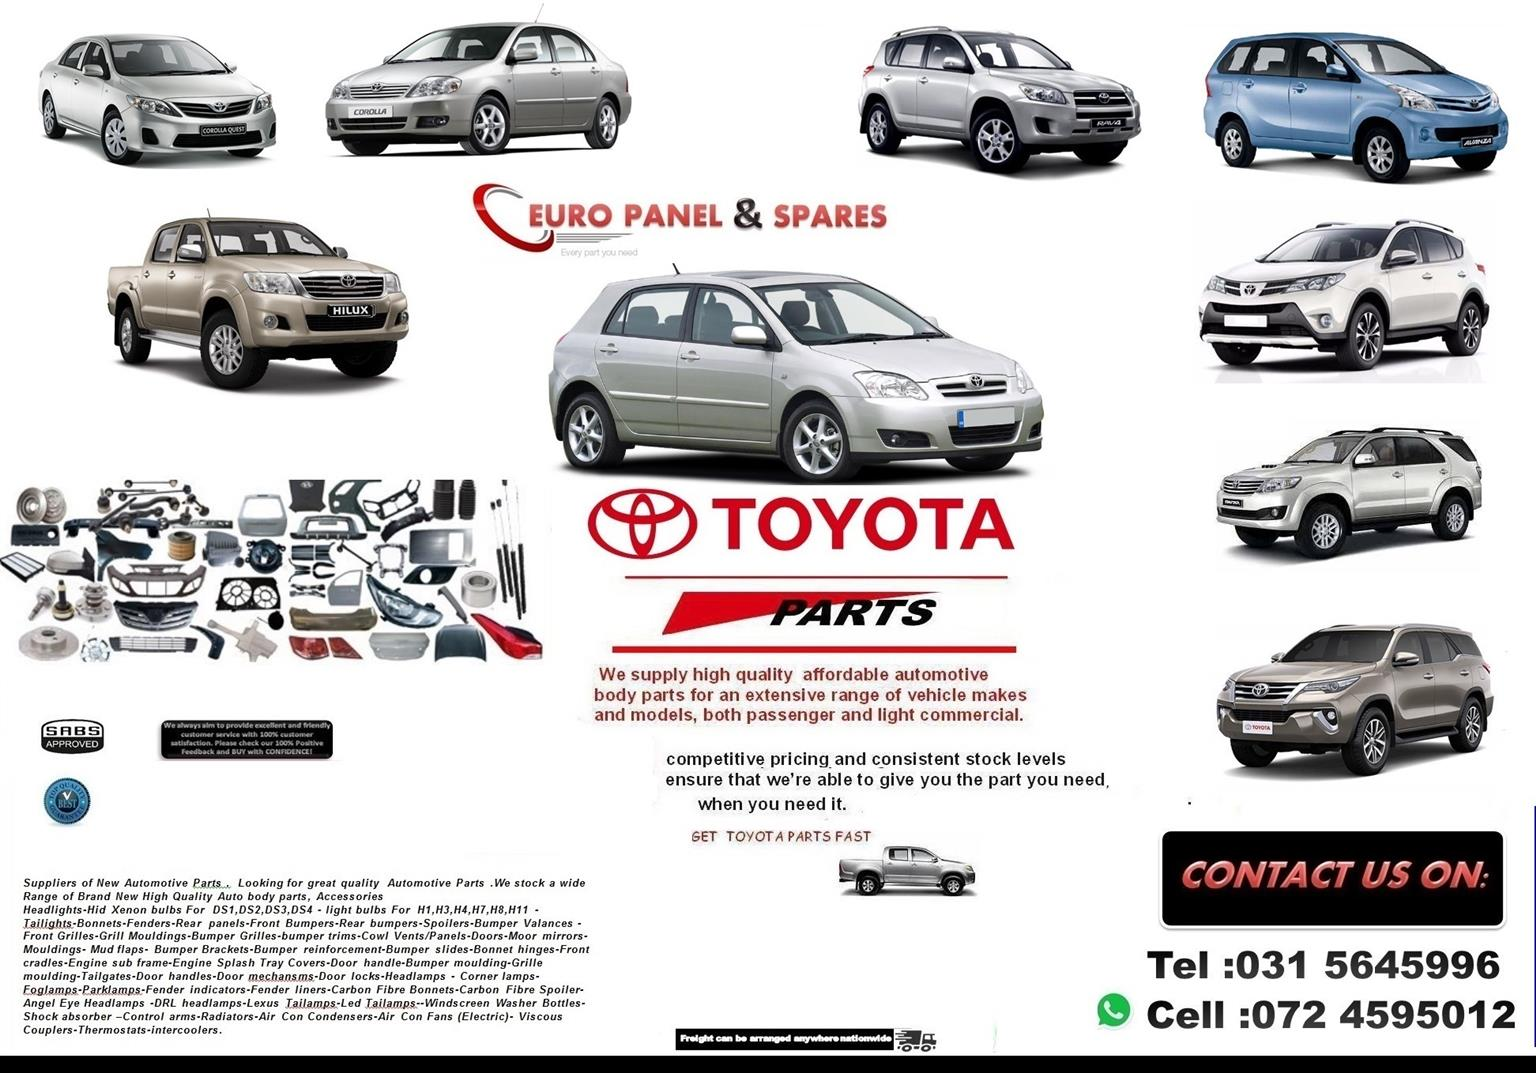 Toyota Auto Parts >> Specialising In Toyota Automotive New Parts Body Parts Accessories